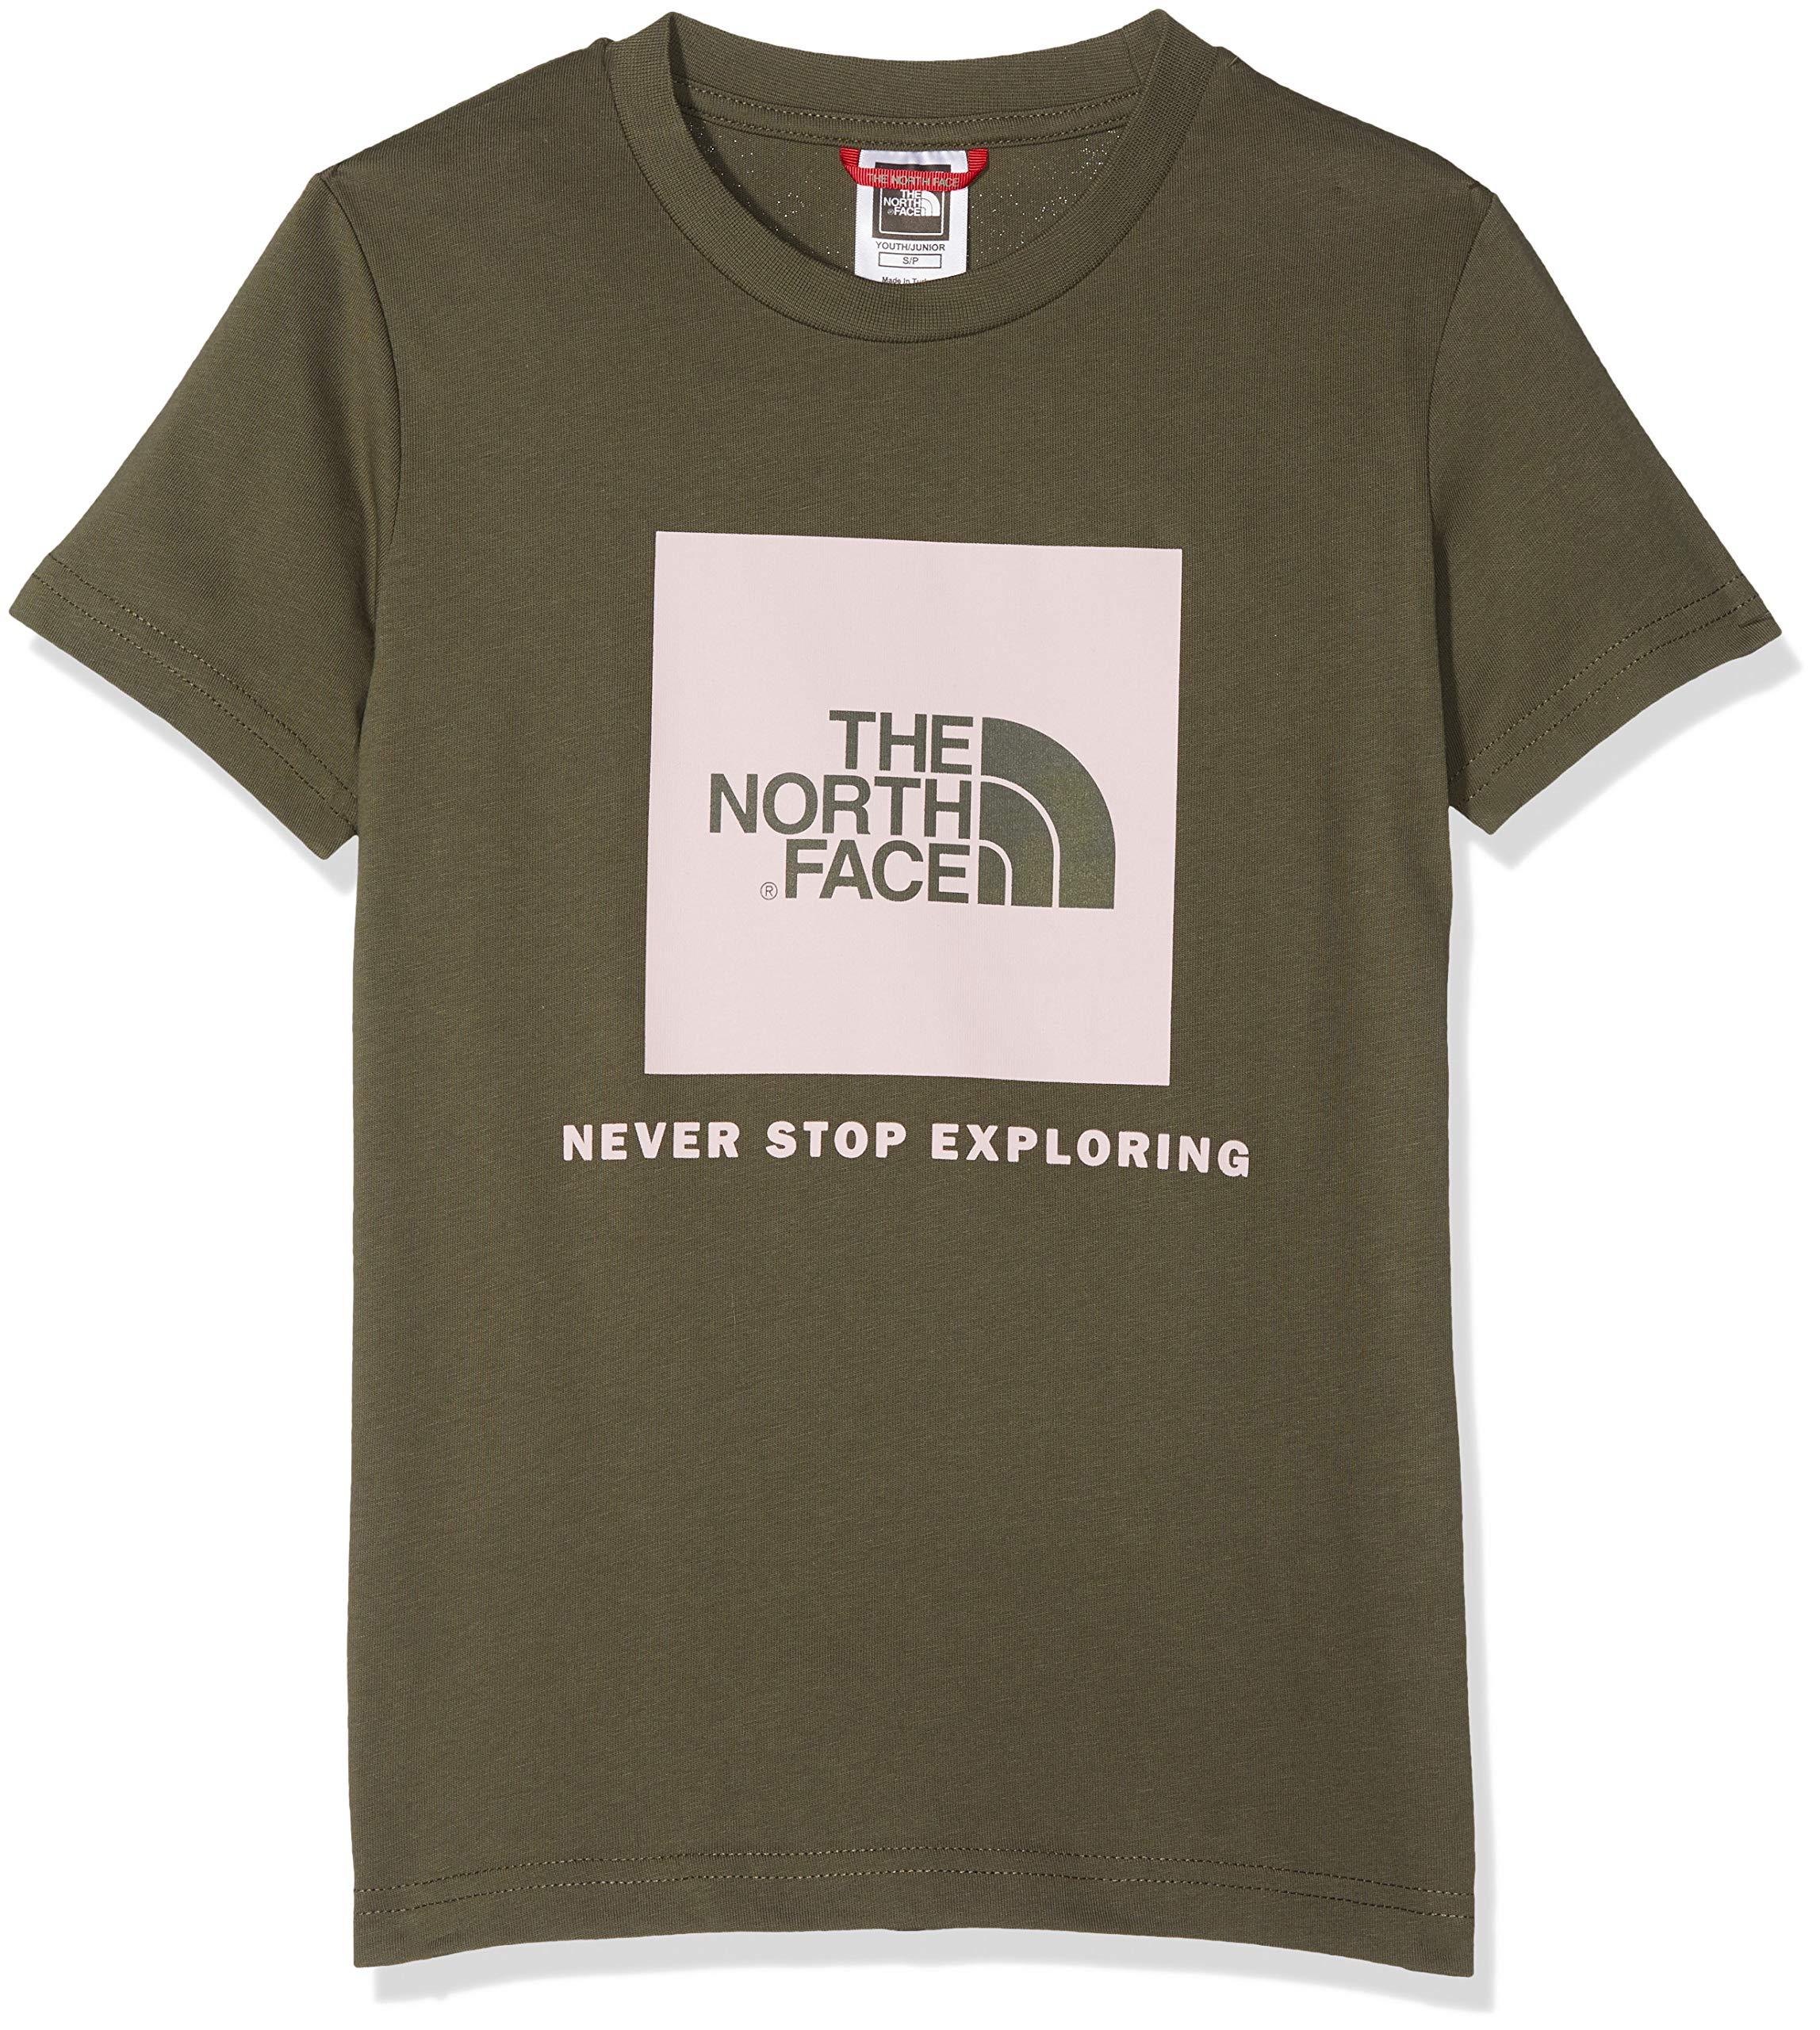 The North Face Unisex Kids Youth Box T-Shirt 1